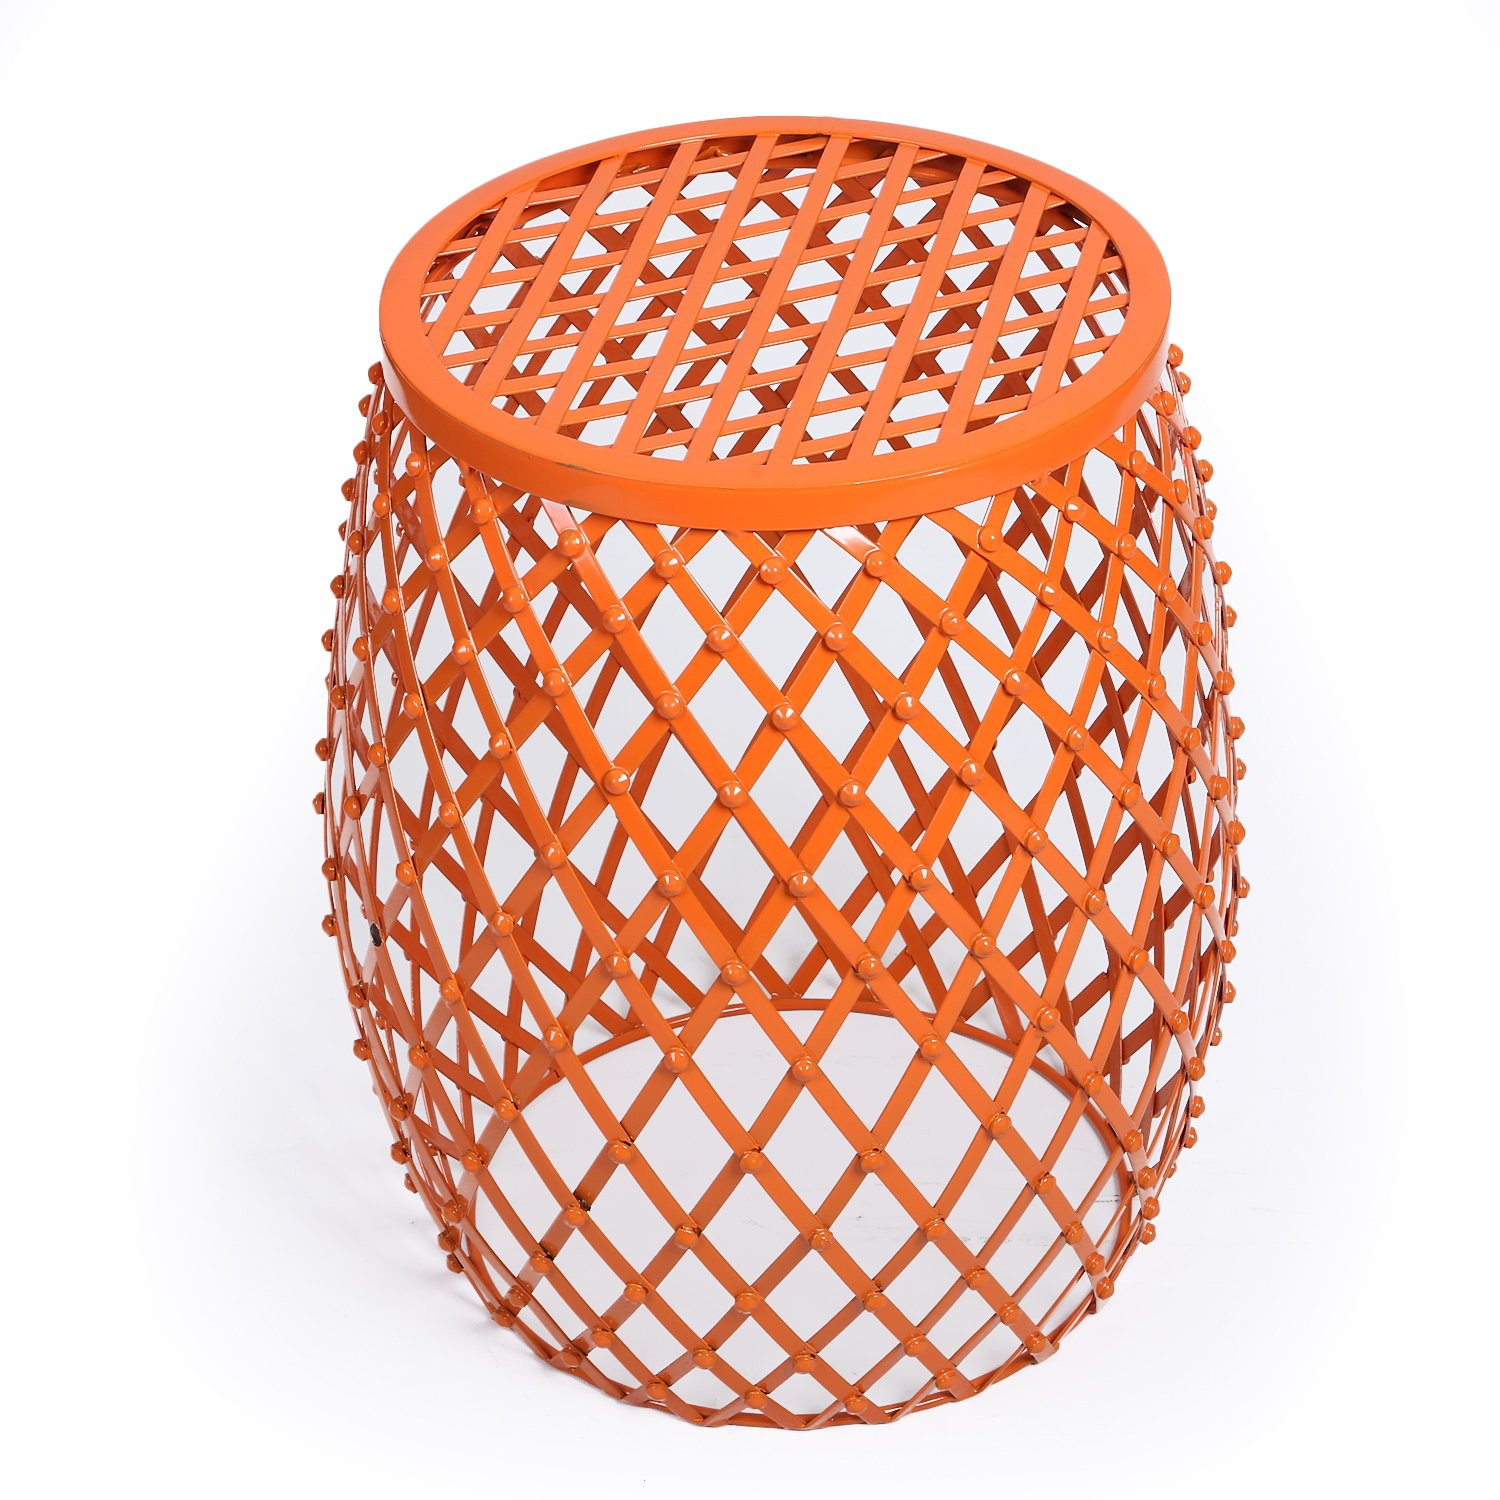 decenthome metal wire accent side table stool orange outdoor garden ethan allen leather couch easter tablecloths oriental style floor lamps pier imports dining ultra furniture